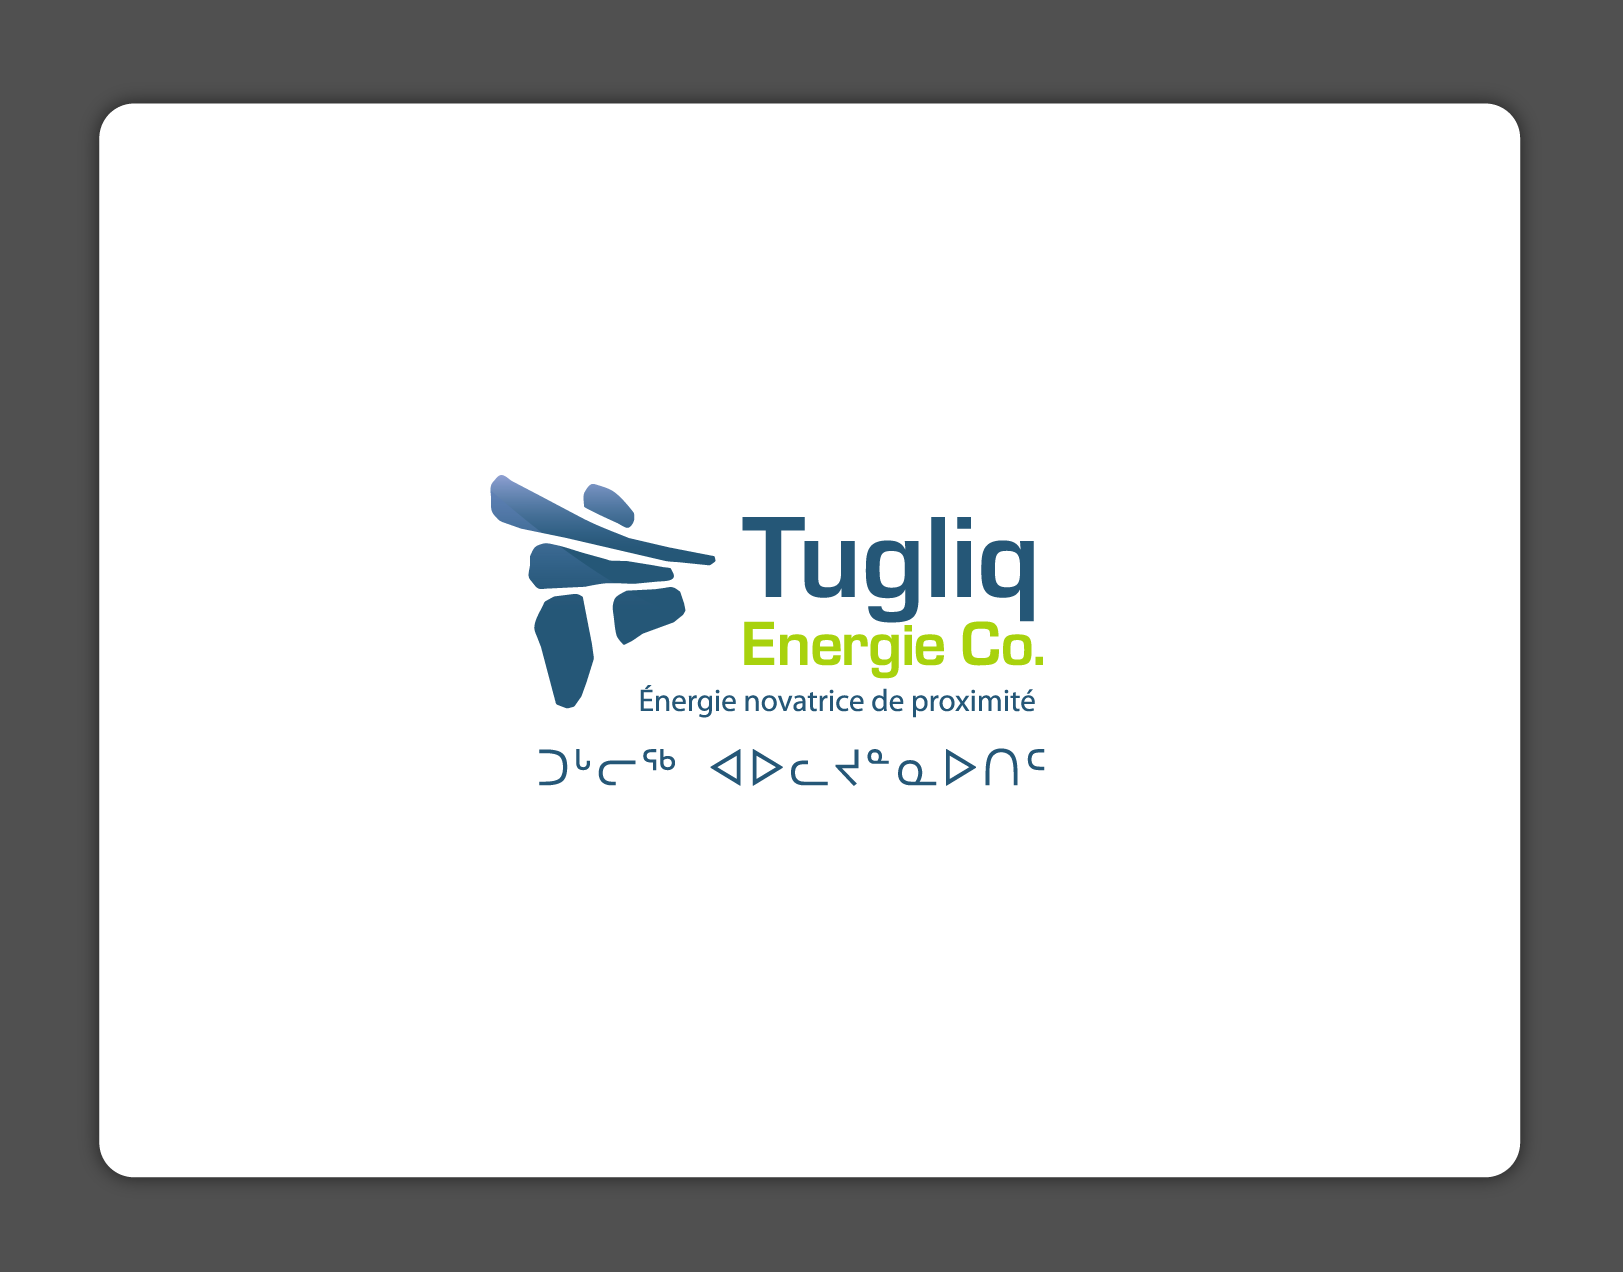 New logo wanted for Tugliq Energy Co.